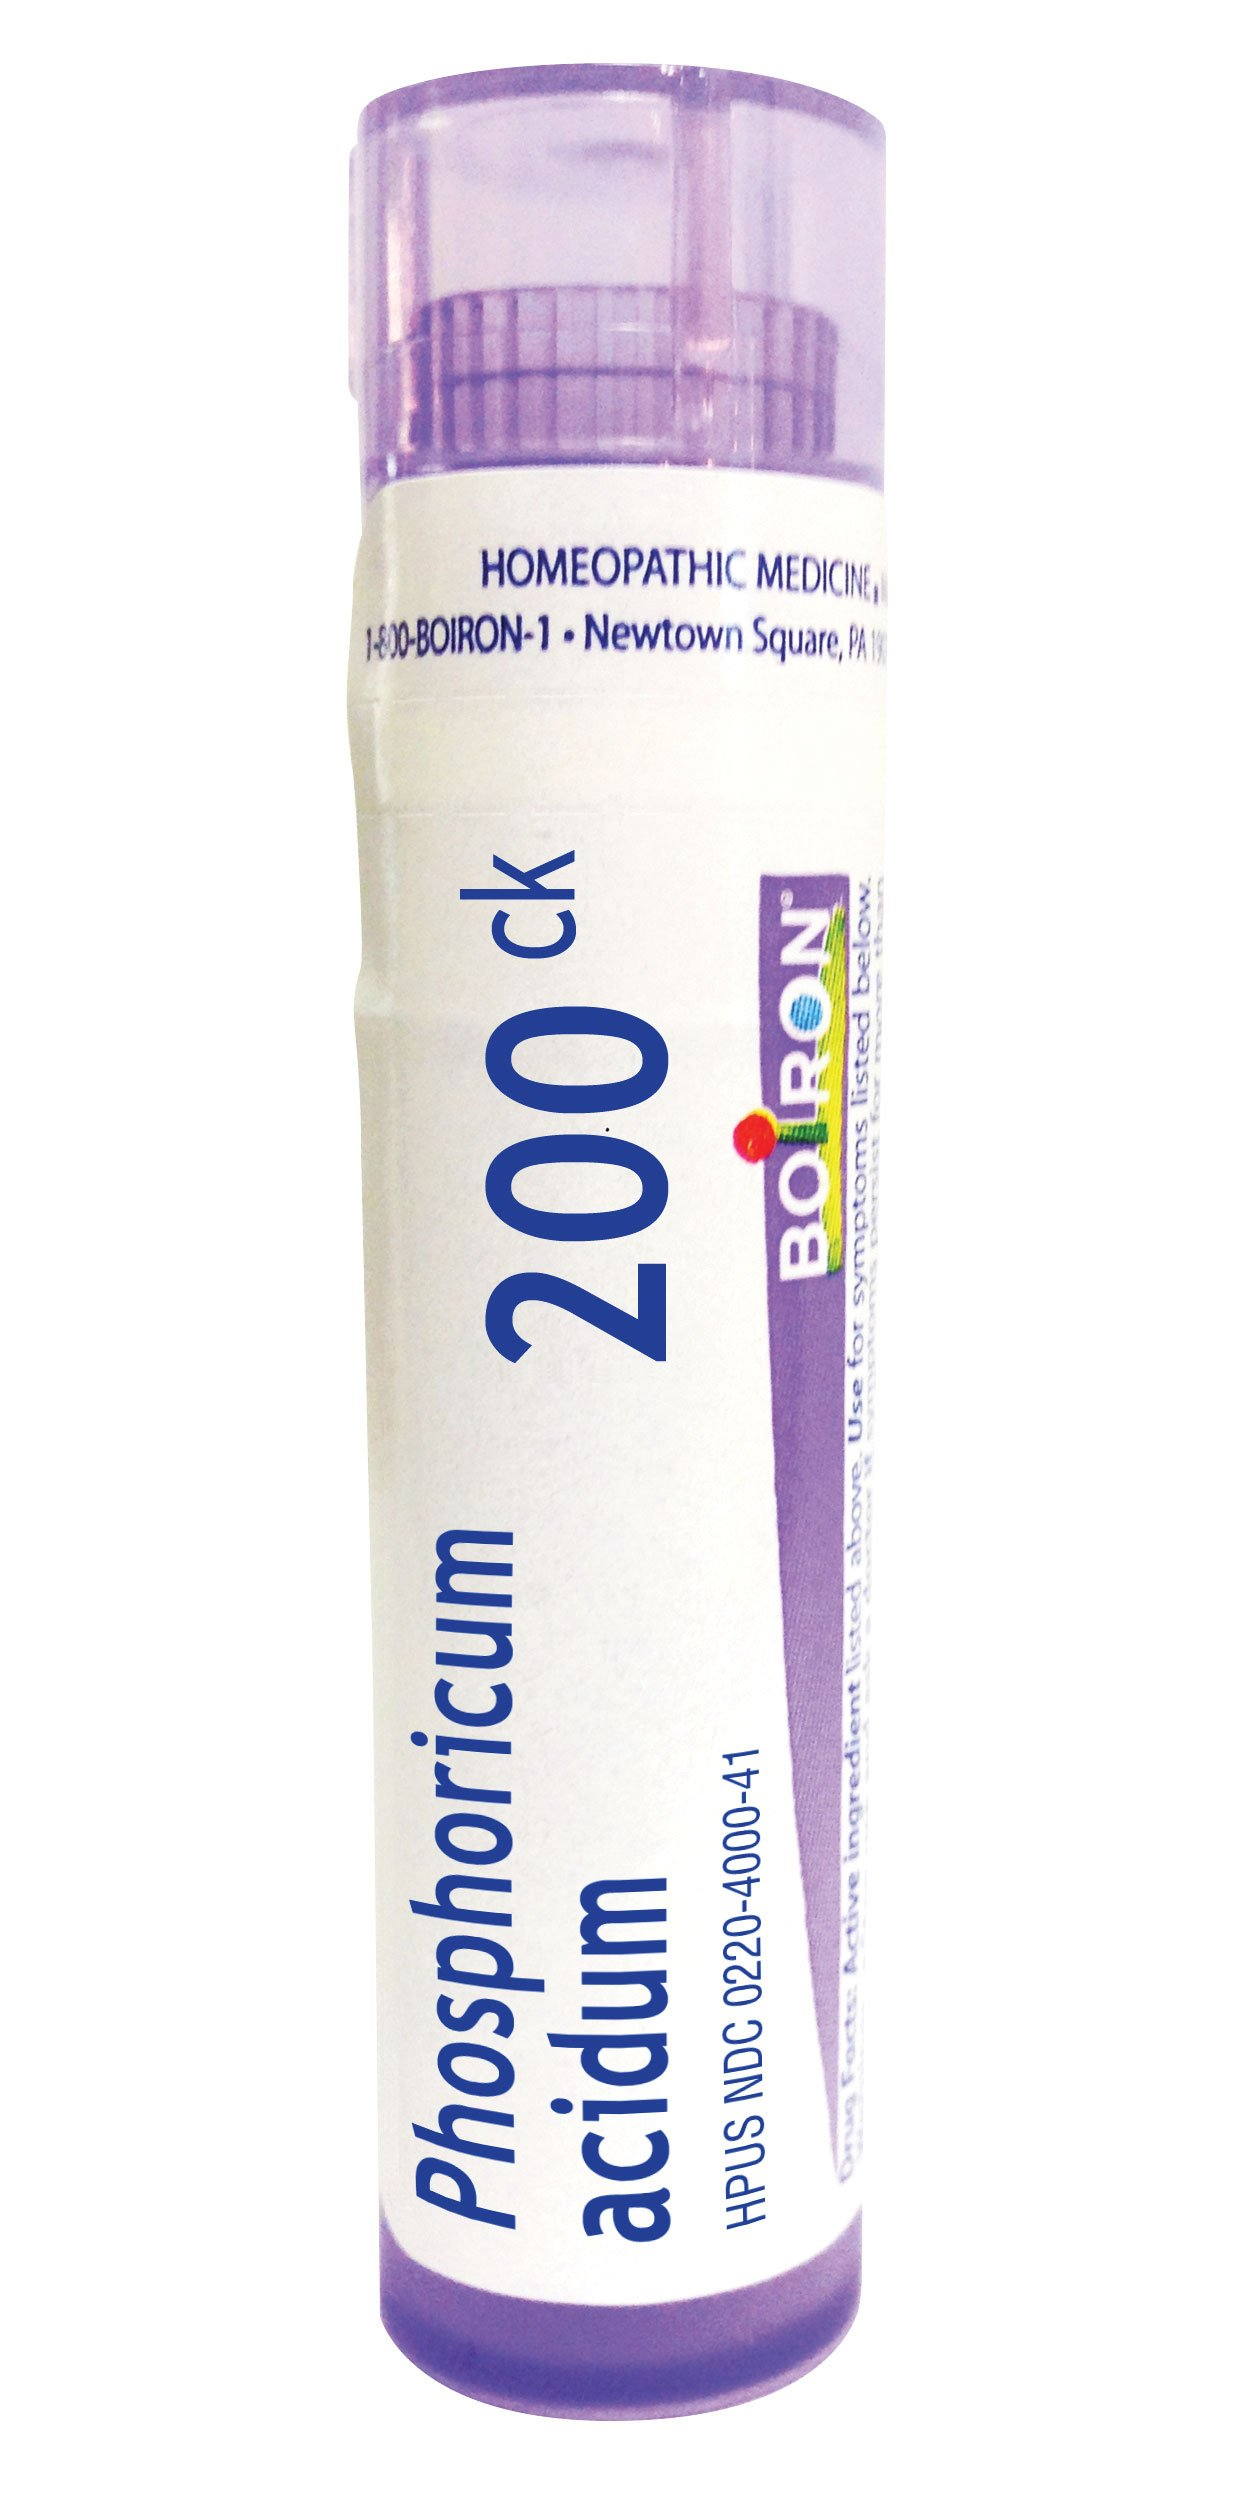 Boiron Phosphoricum Acidum 200CK Homeopathic Medicine for Concentration, 80 Count